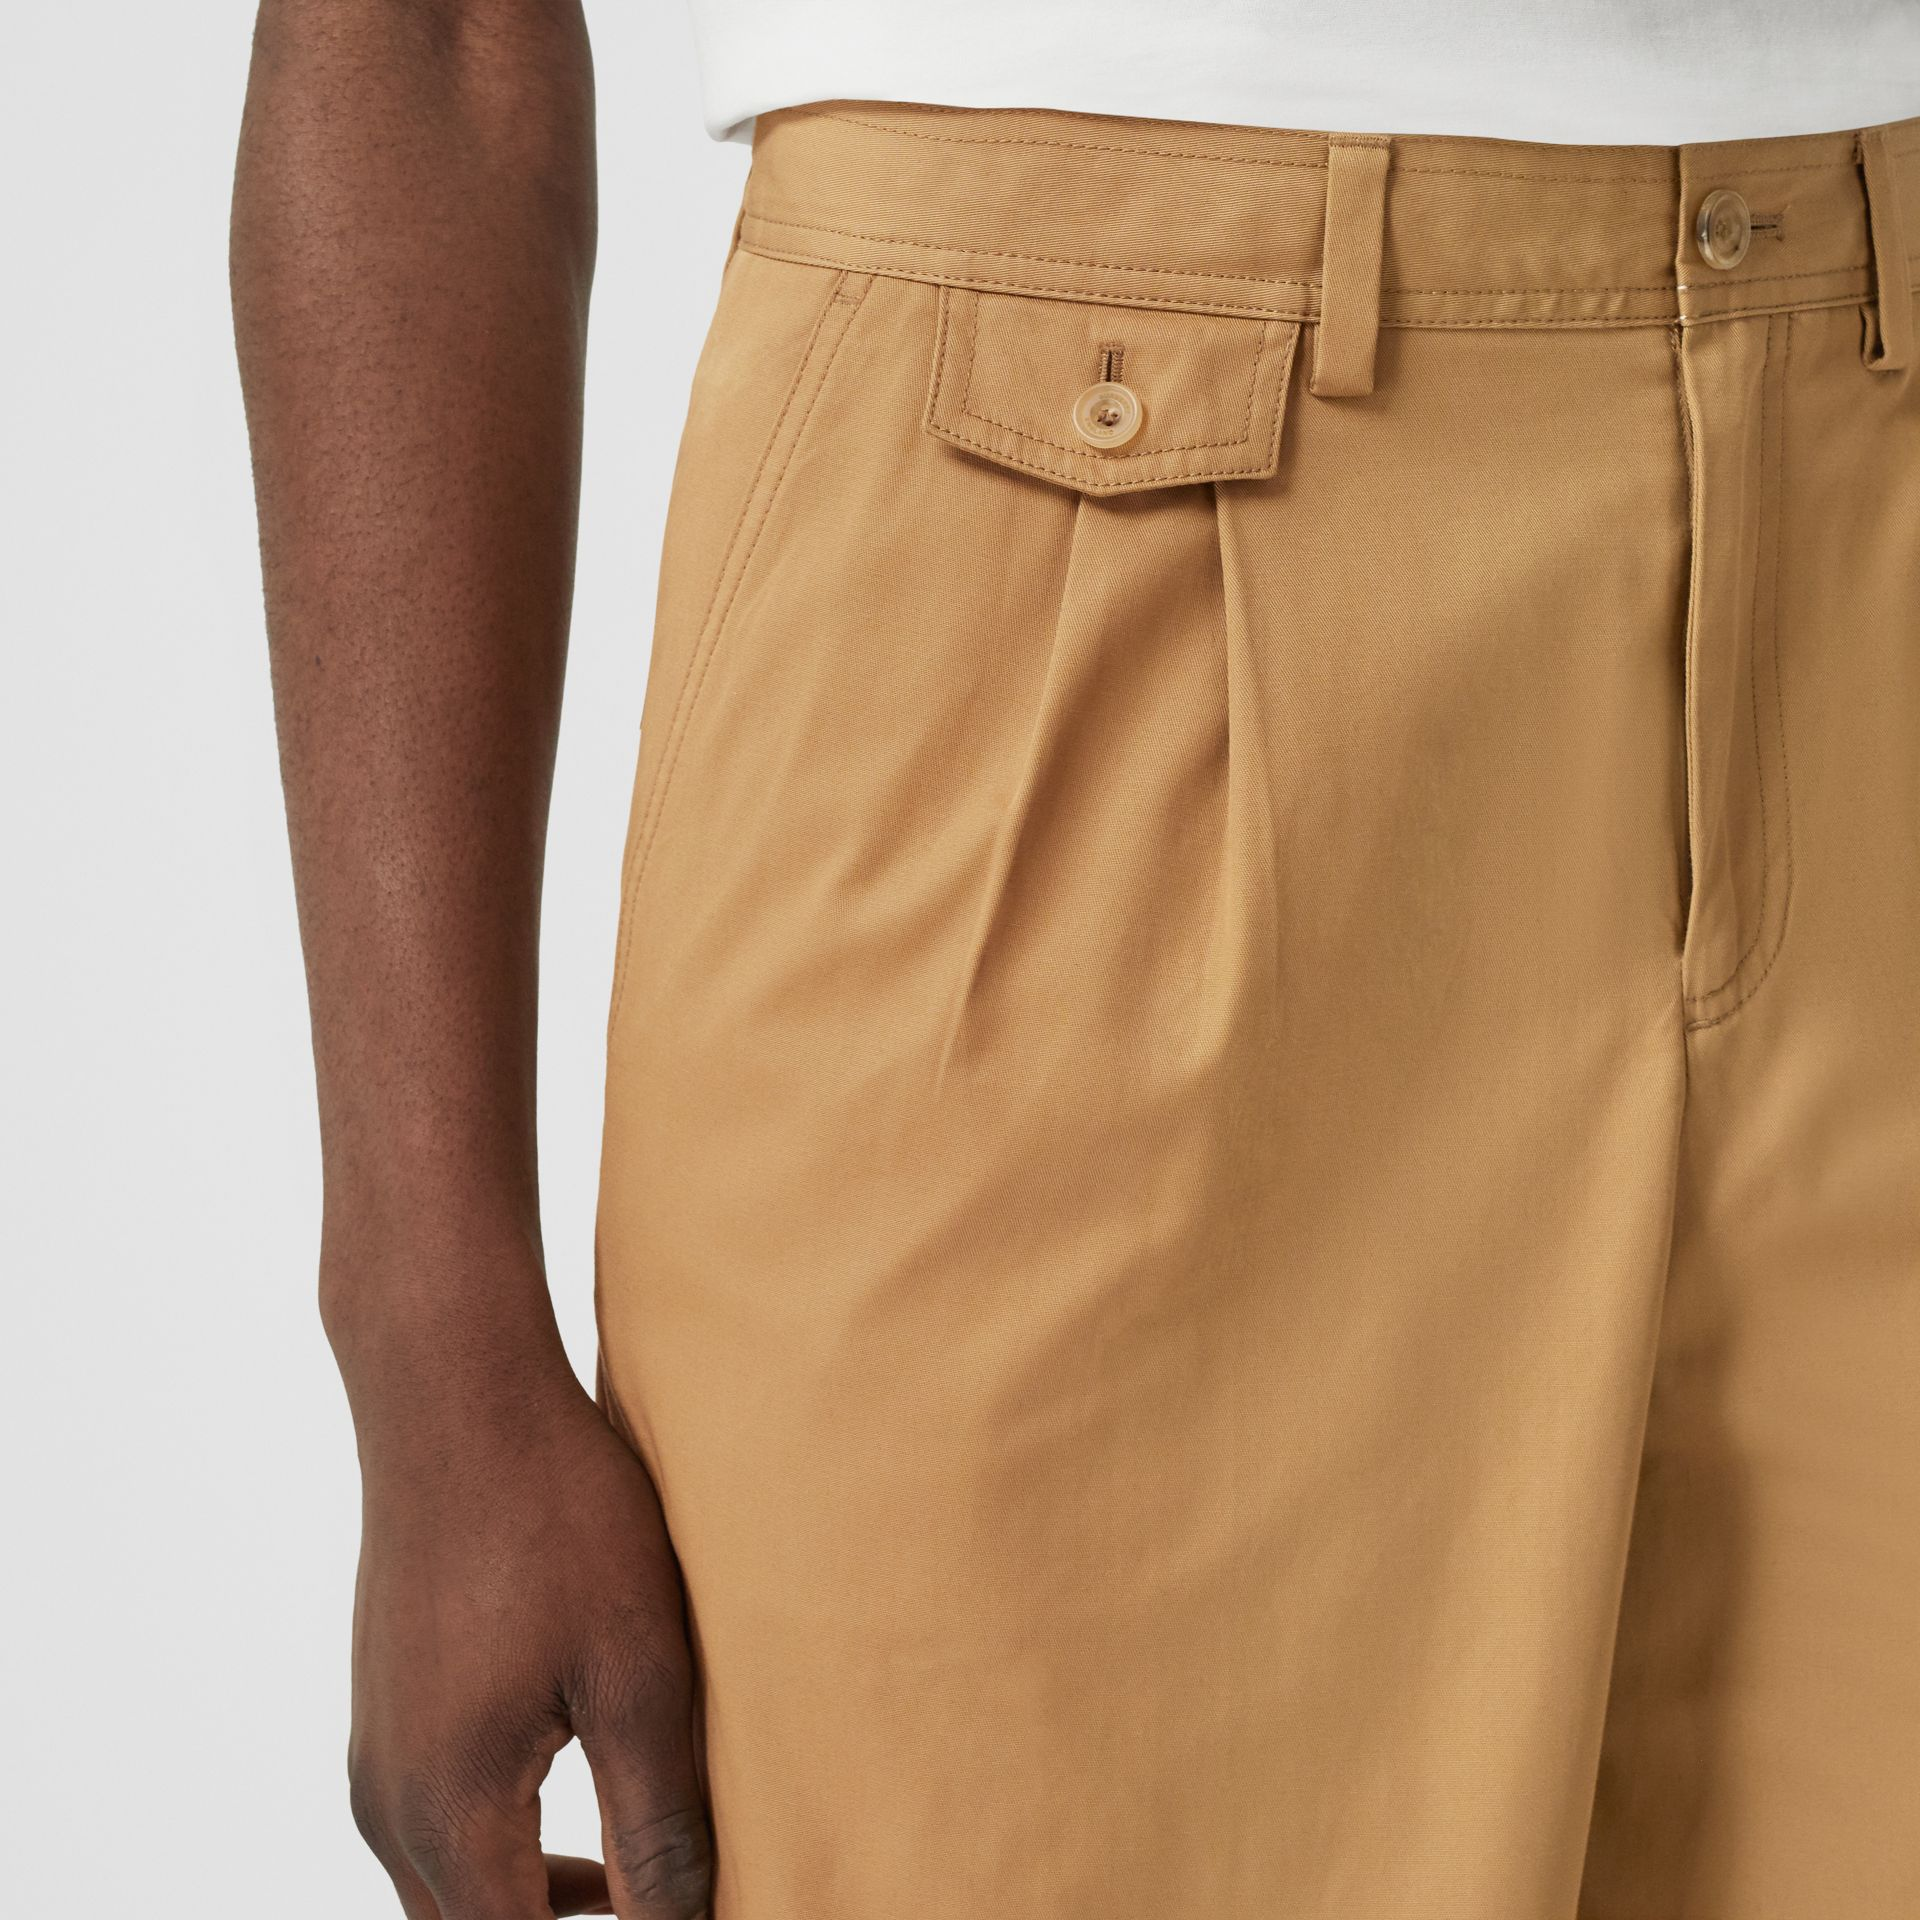 Icon Stripe Detail Cotton Twill Tailored Shorts in Camel - Men | Burberry United States - gallery image 1